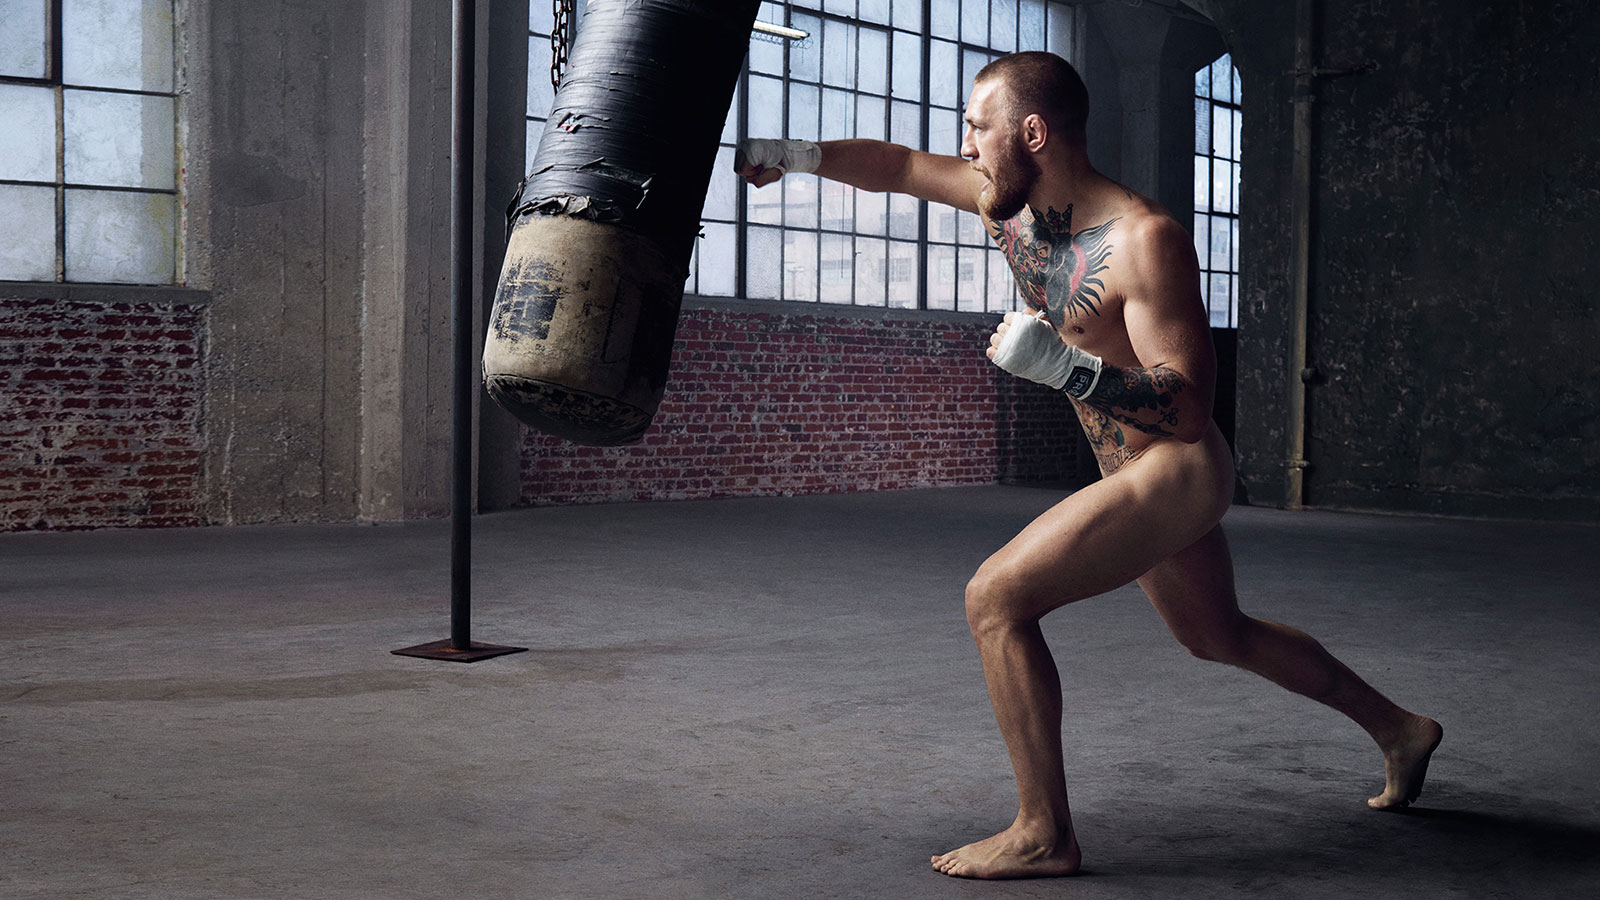 Conor McGregor, UFC, featured in the Body Issue 2016: Fully Exposed on ESPN the Magazine